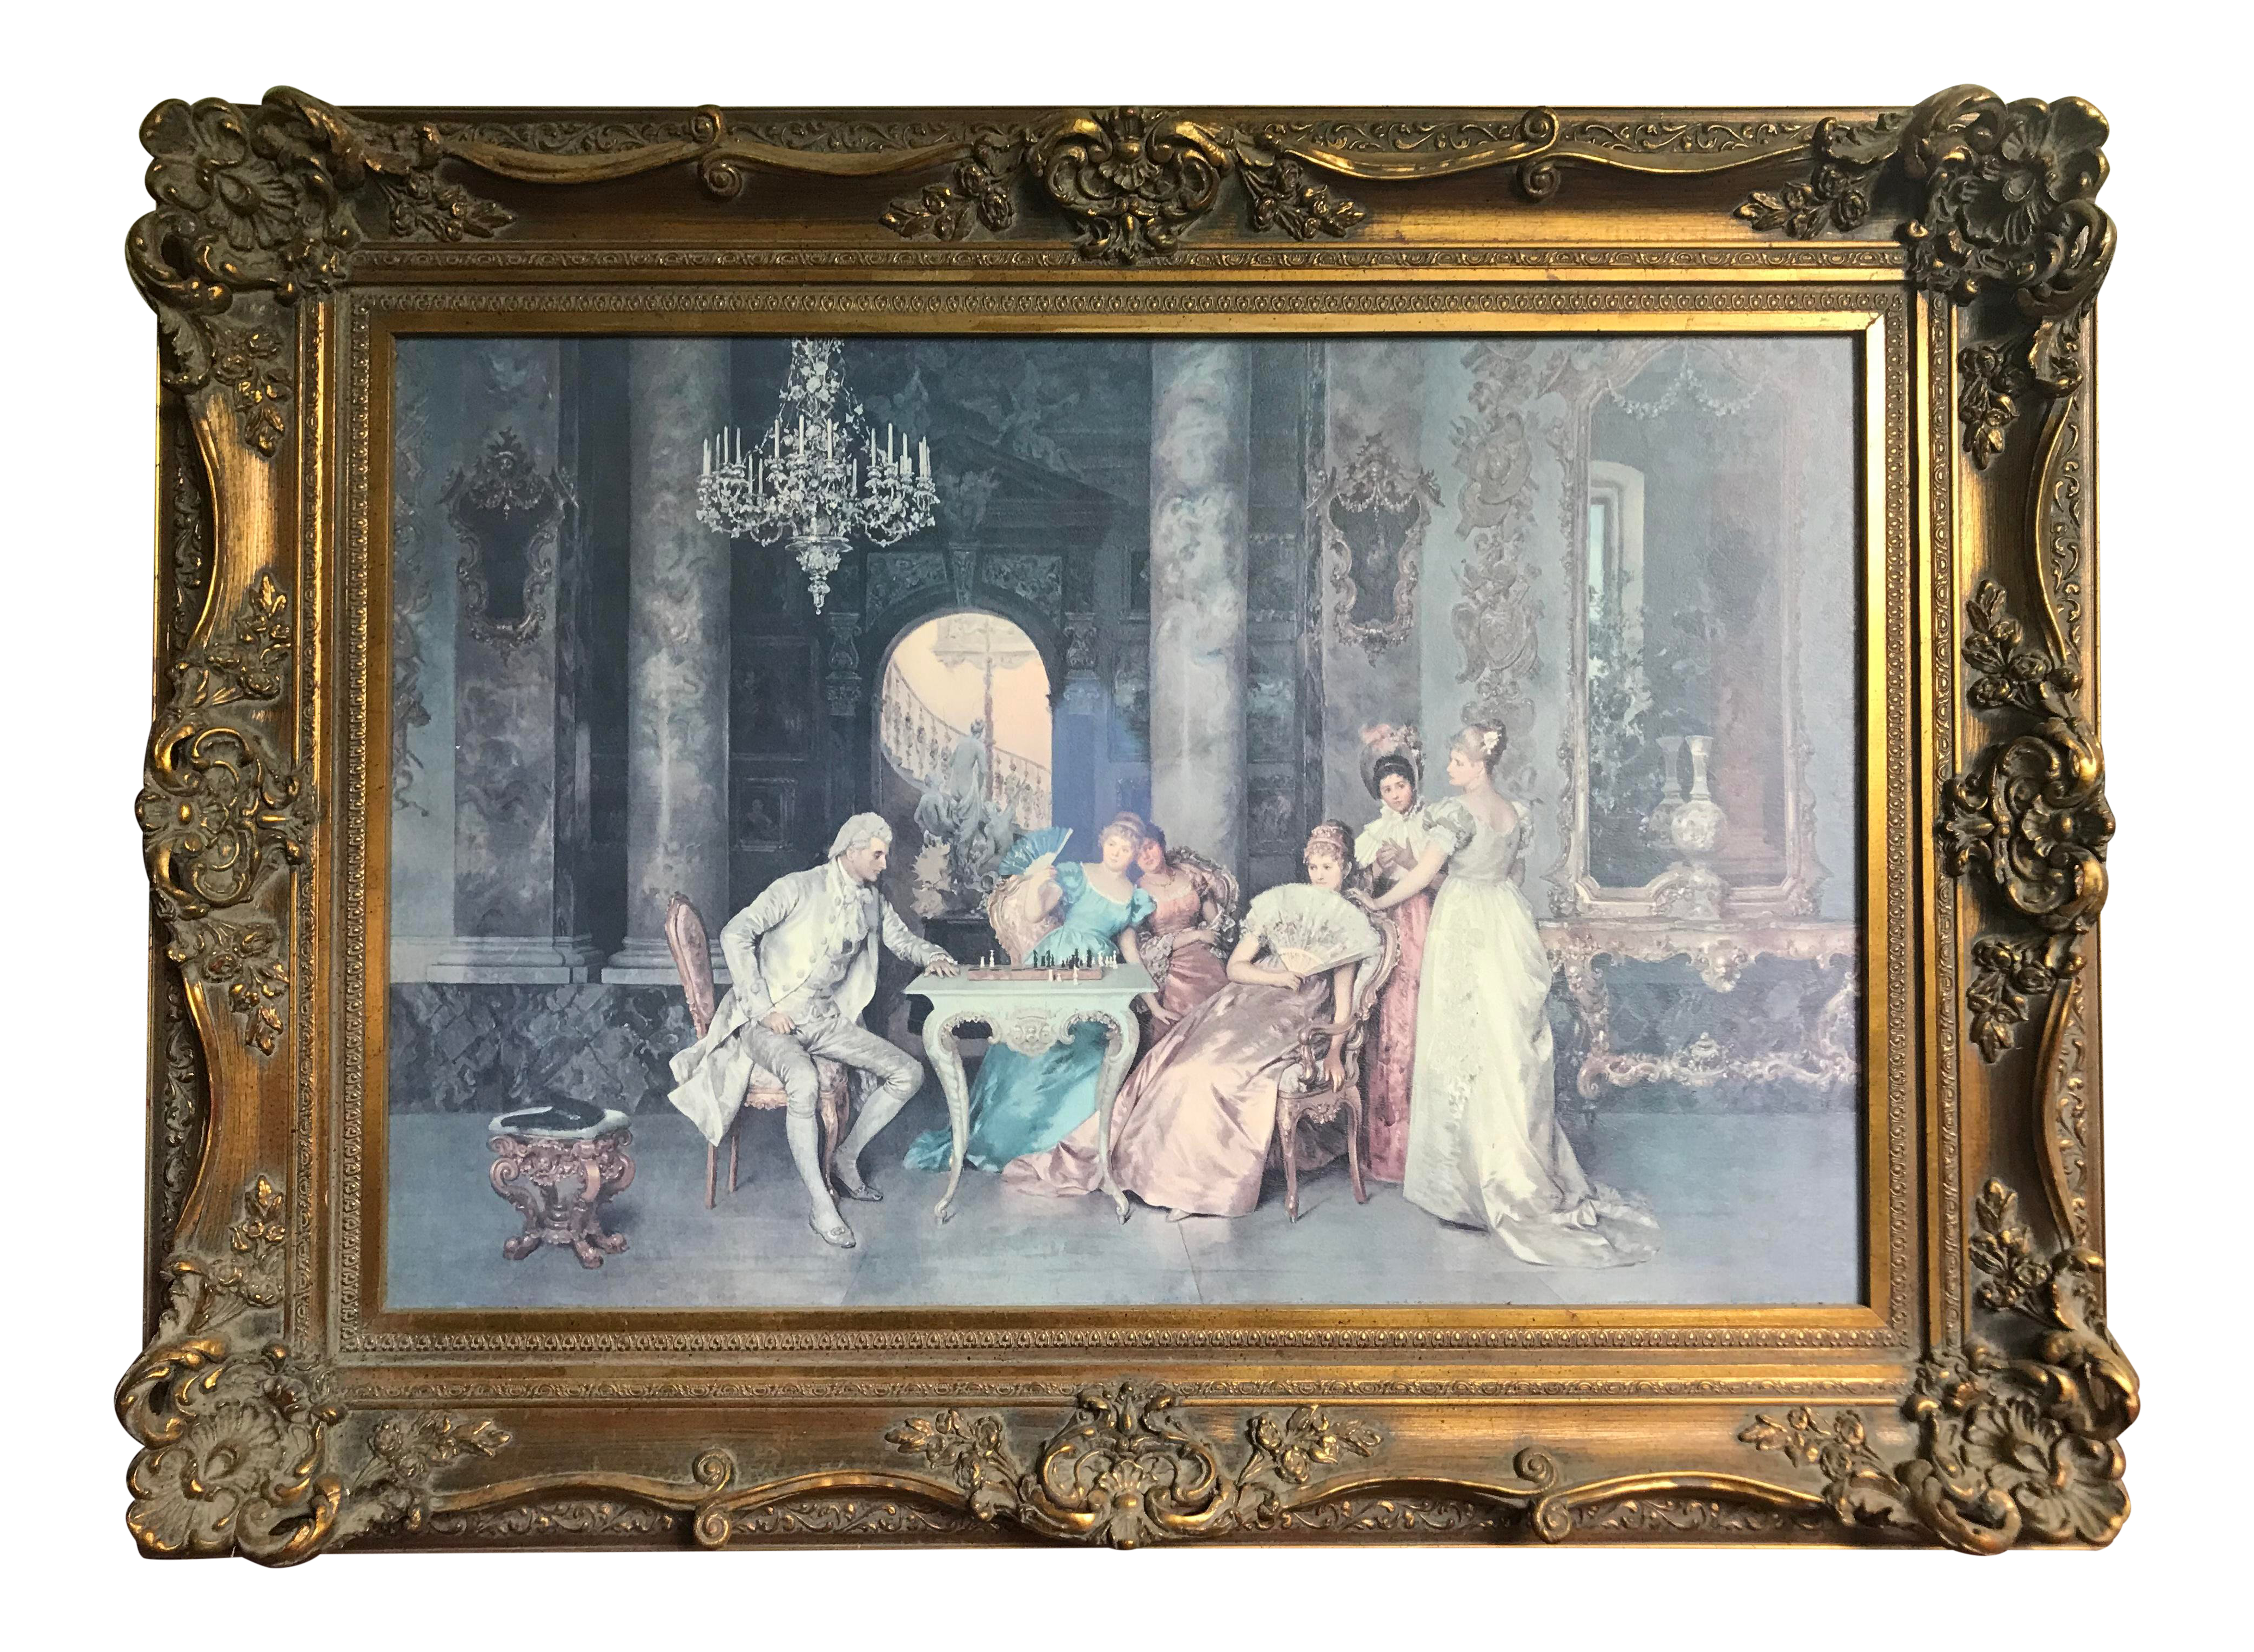 The Chess Game Print By Francesco Beda In A French Carved Gilt